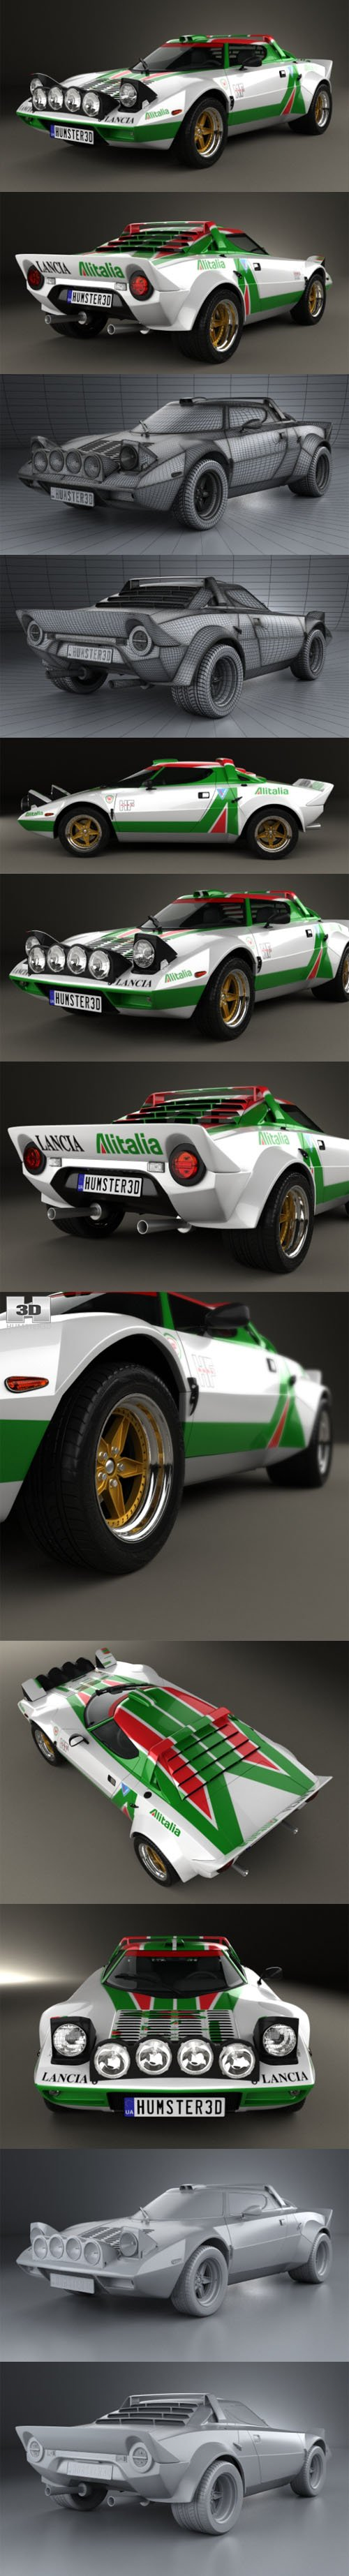 Lancia Stratos Rally 1972 for Cinema 4D